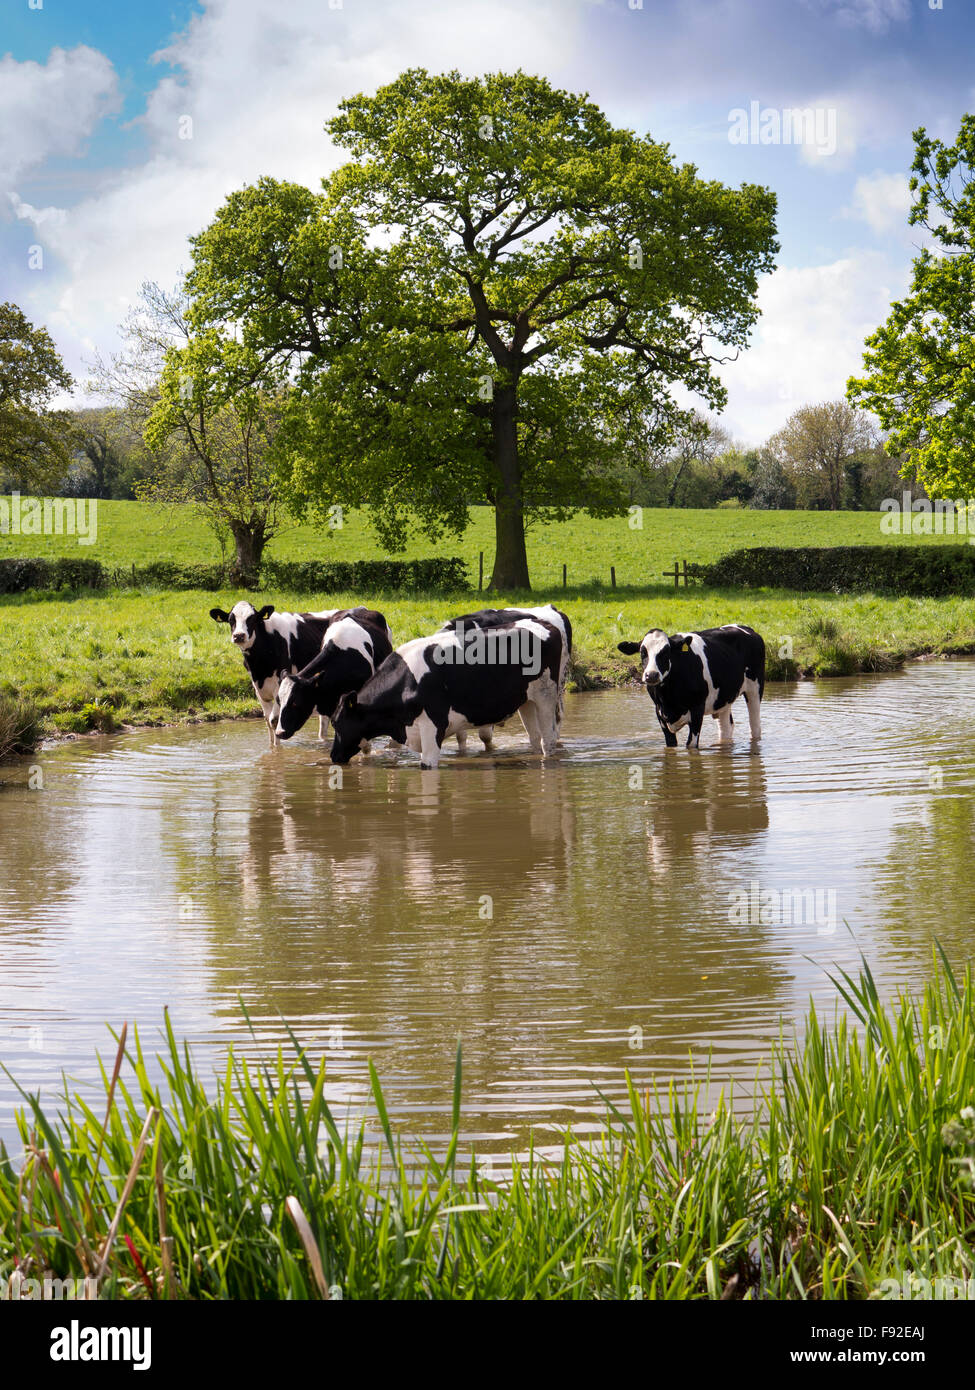 UK, England, Cheshire, Astbury, Fresian dairy cattle cooling off in Macclesfield Canal during hot weather - Stock Image